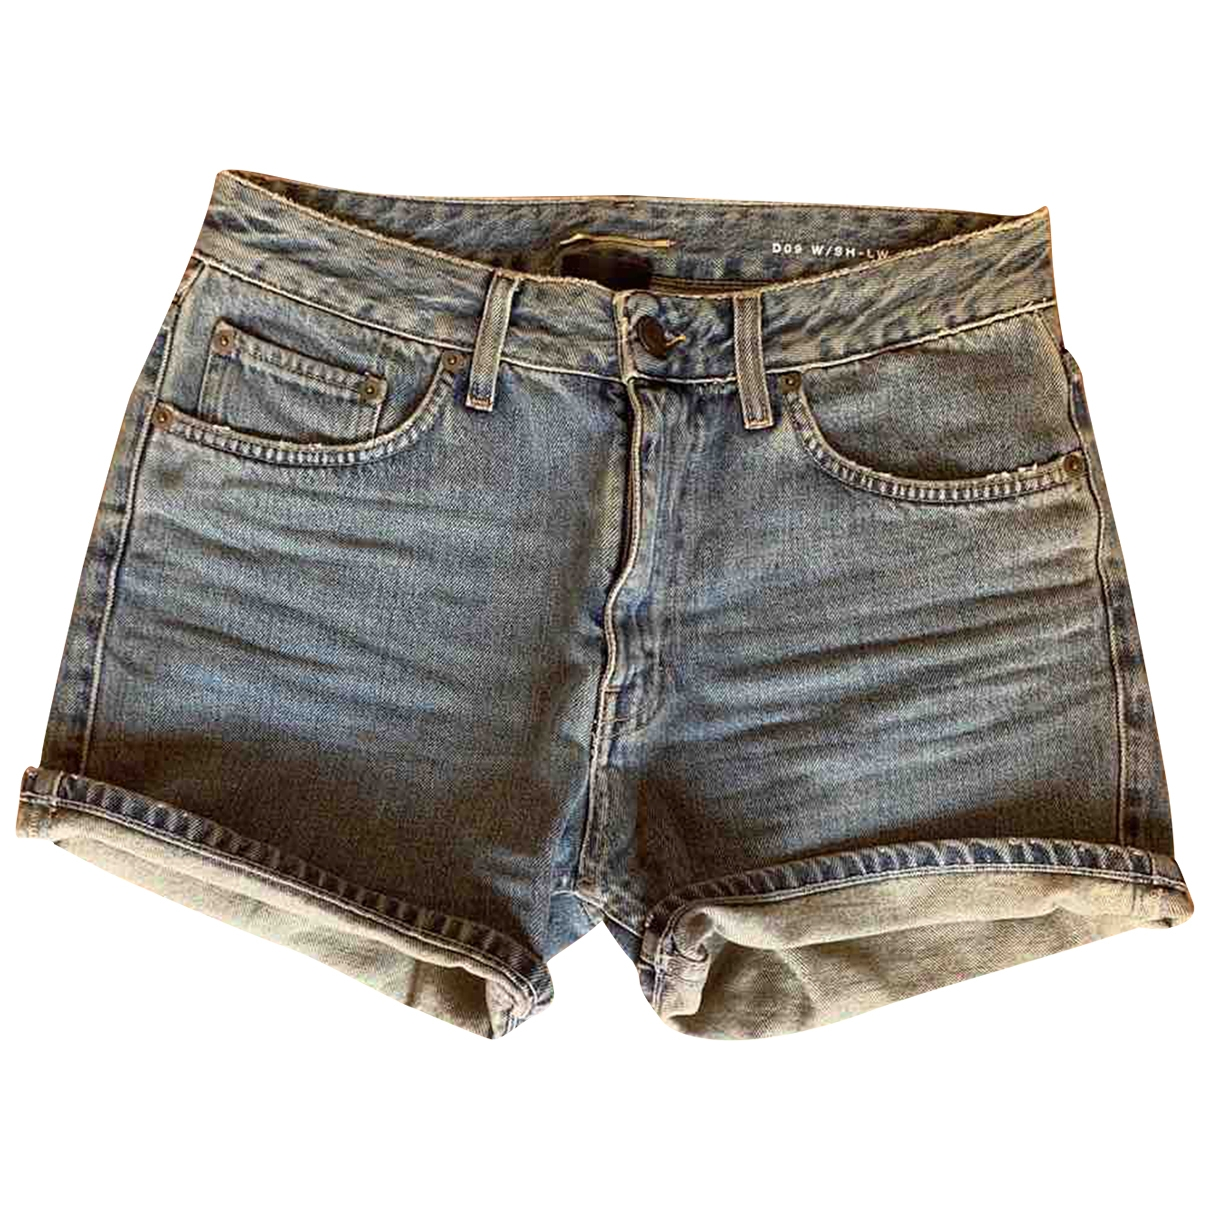 Saint Laurent \N Blue Denim - Jeans Shorts for Women M International